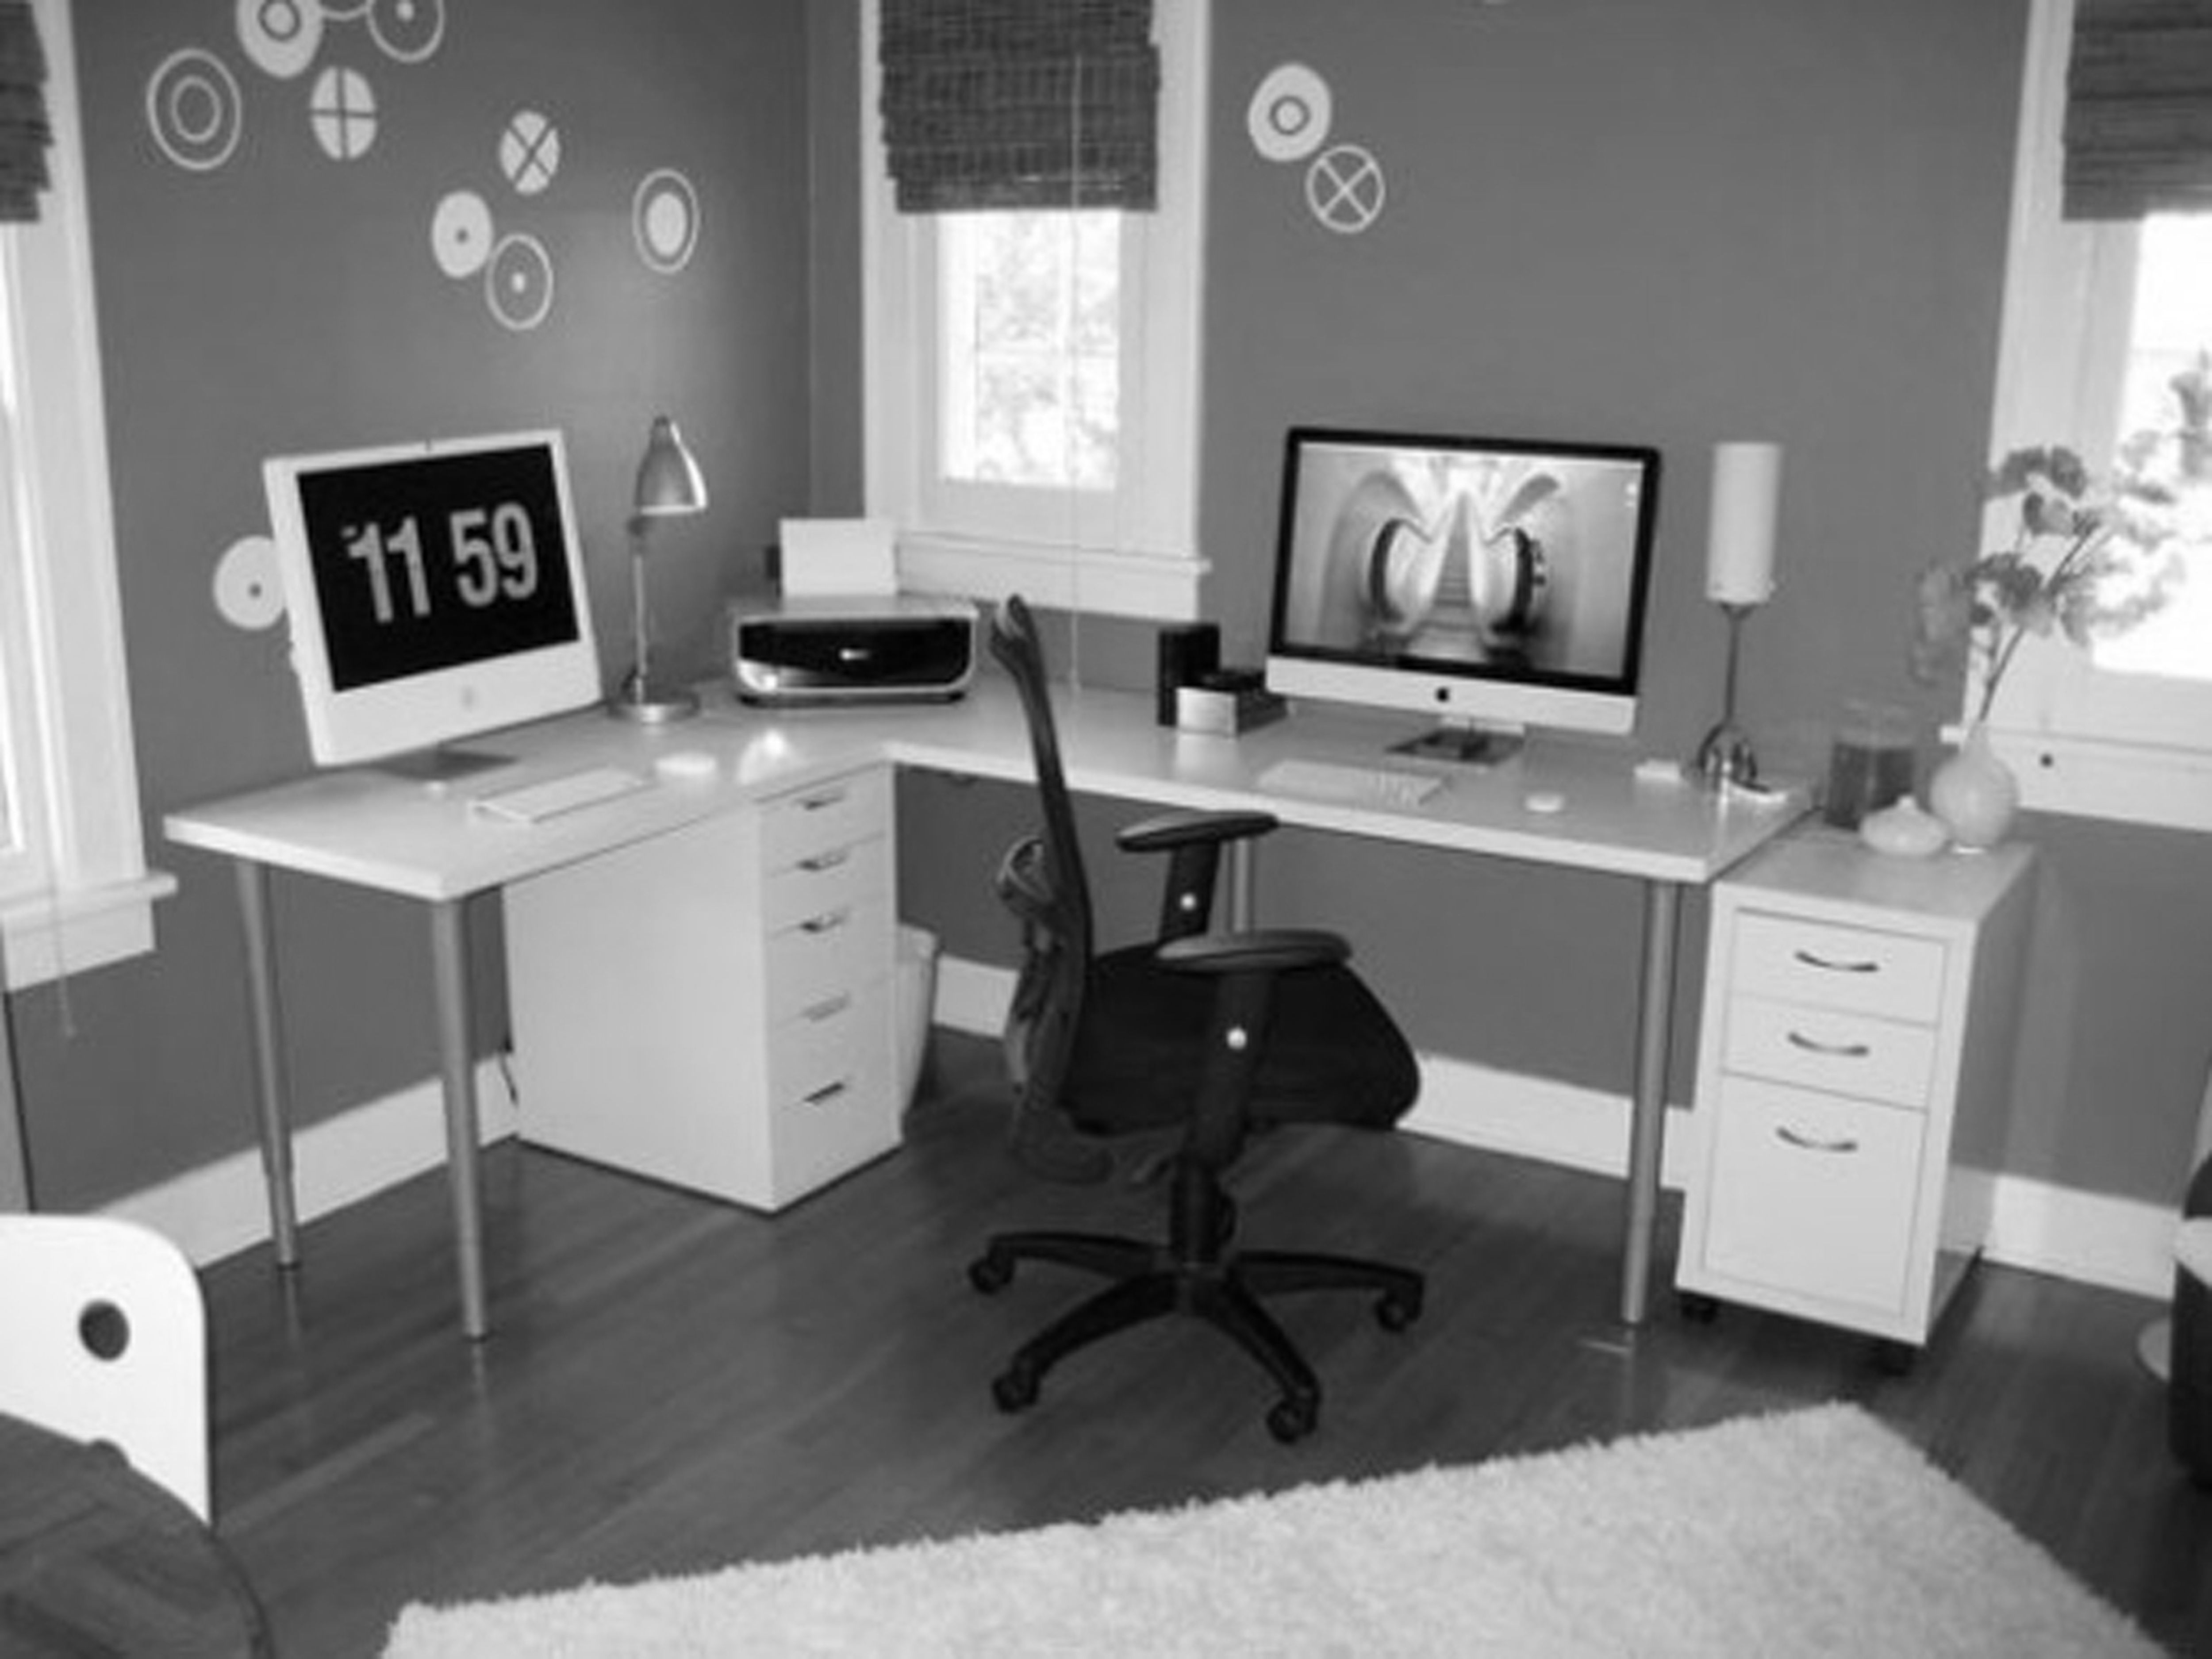 Grey Painted Wall and White Sectional Computer Desk Used in Stylish Office Decor Ideas